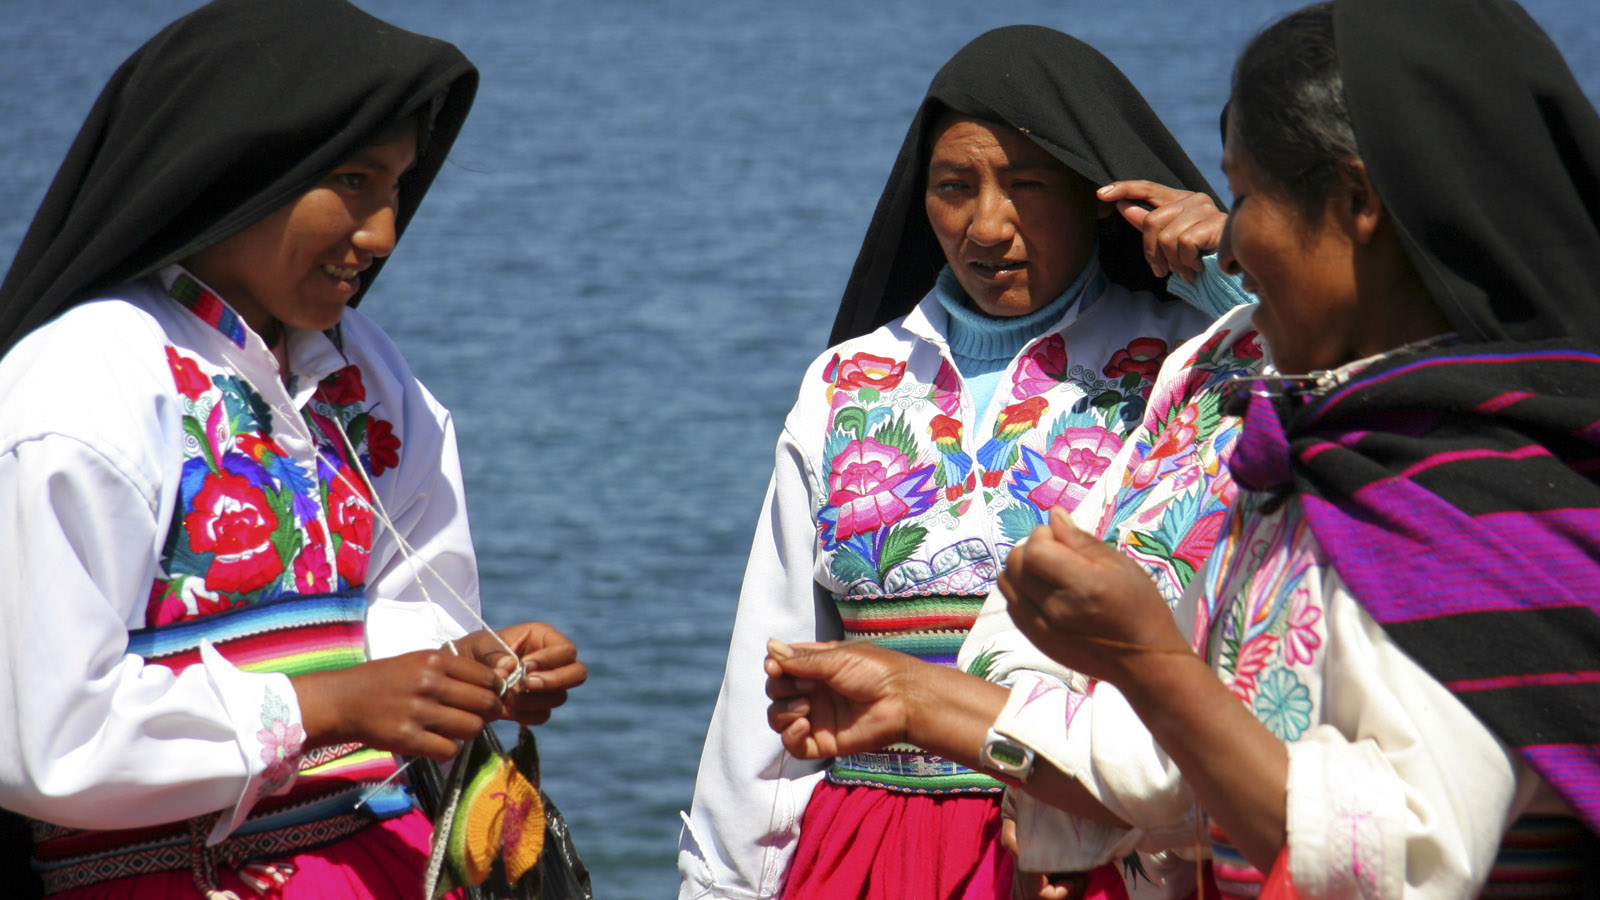 Foto 1 de Tour to Uros, Taquile & Amantani Islands